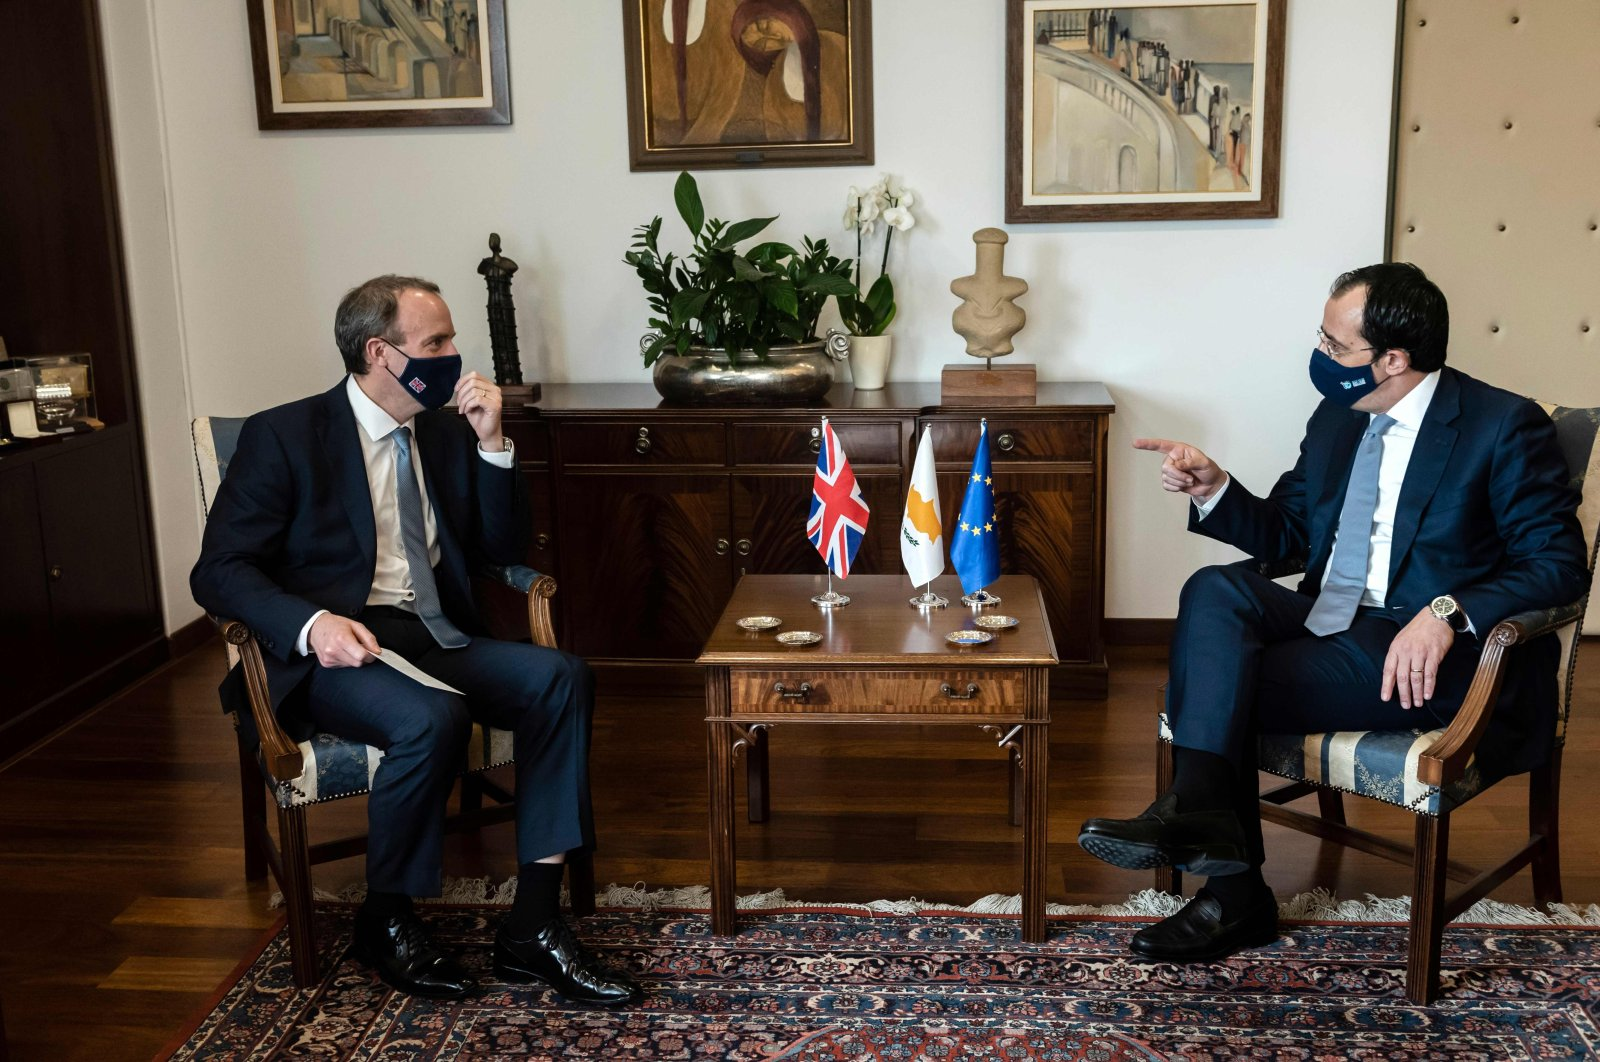 Greek Cypriot Minister of Foreign Affairs Nikos Christodoulides (R) meets with his British counterpart Dominic Raab, in the capital Nicosia, Greek Cypriot administration, Feb. 4, 2021. (AFP Photo)